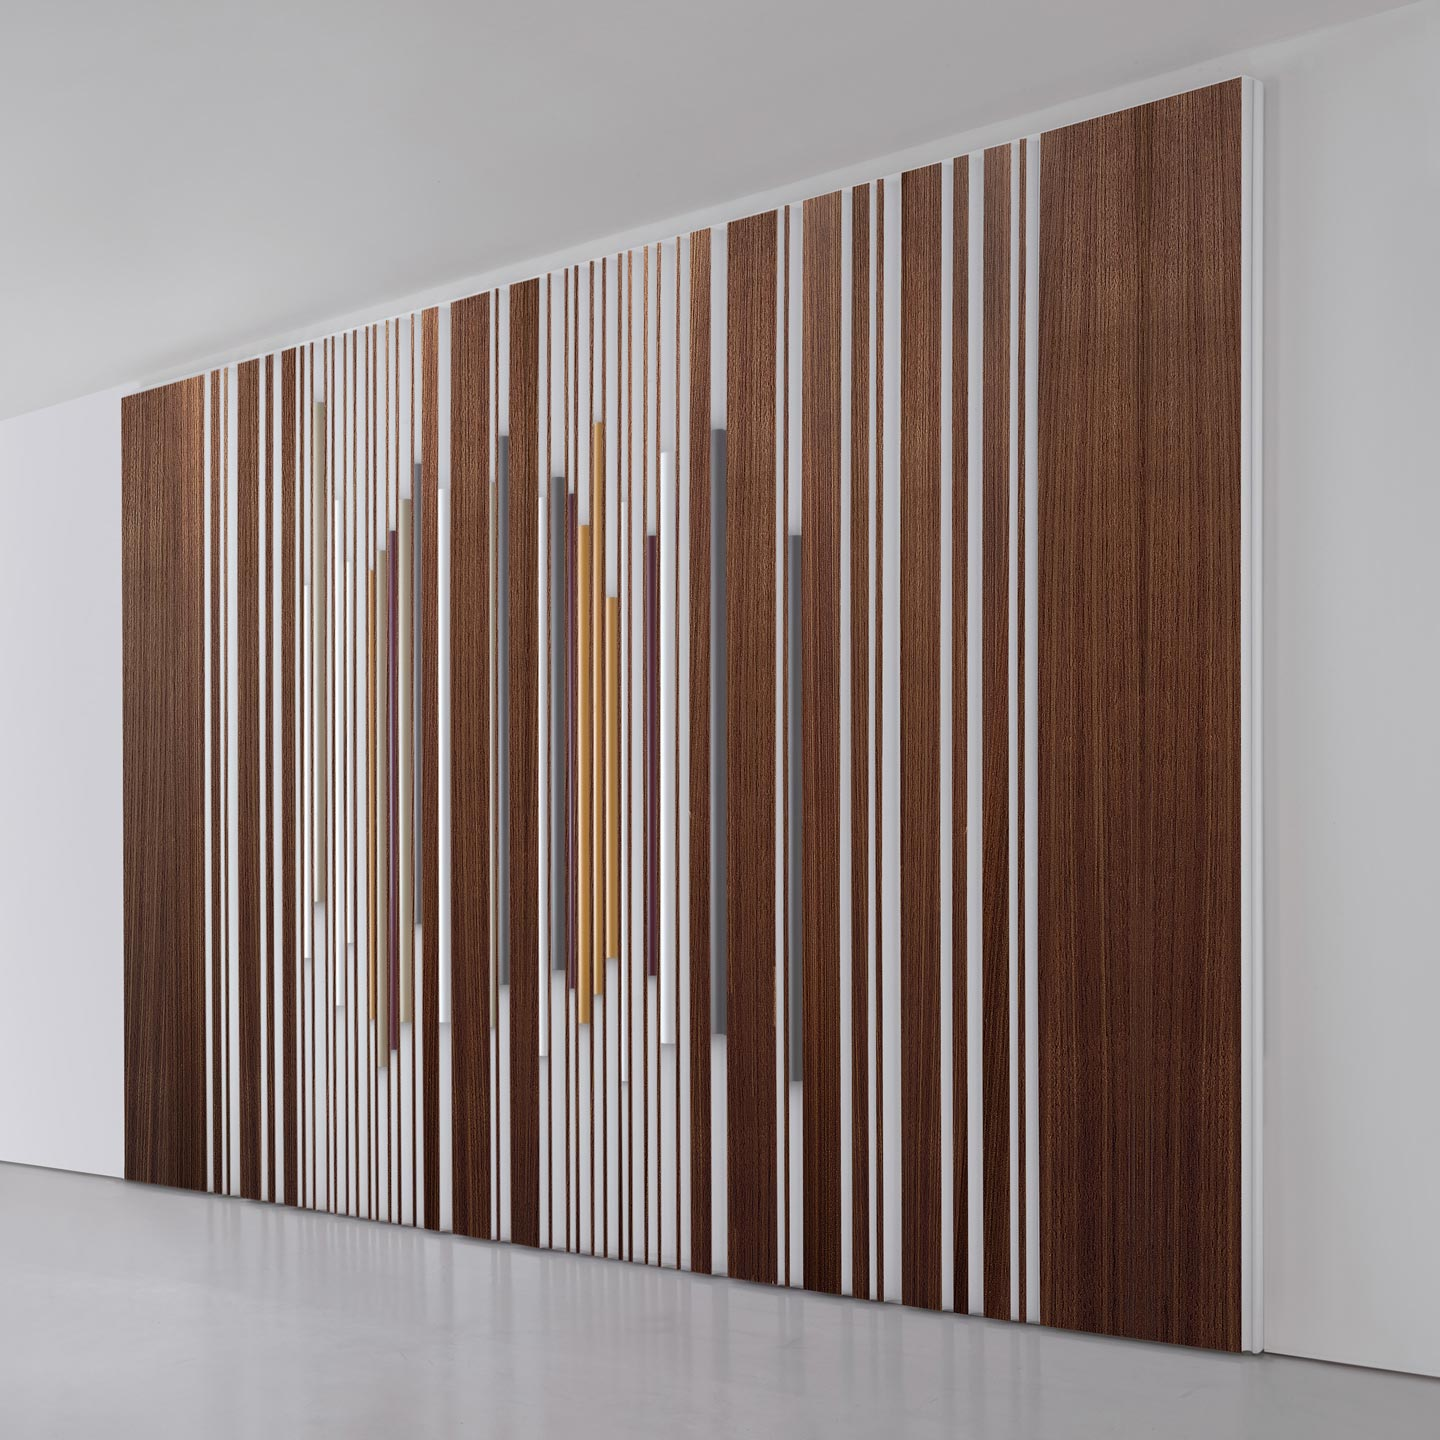 Great Designs Of Bamboo Panel Idea For Your Space : Stylish Designs Of Bamboo Panel Modern Style Sliding Door Ideas